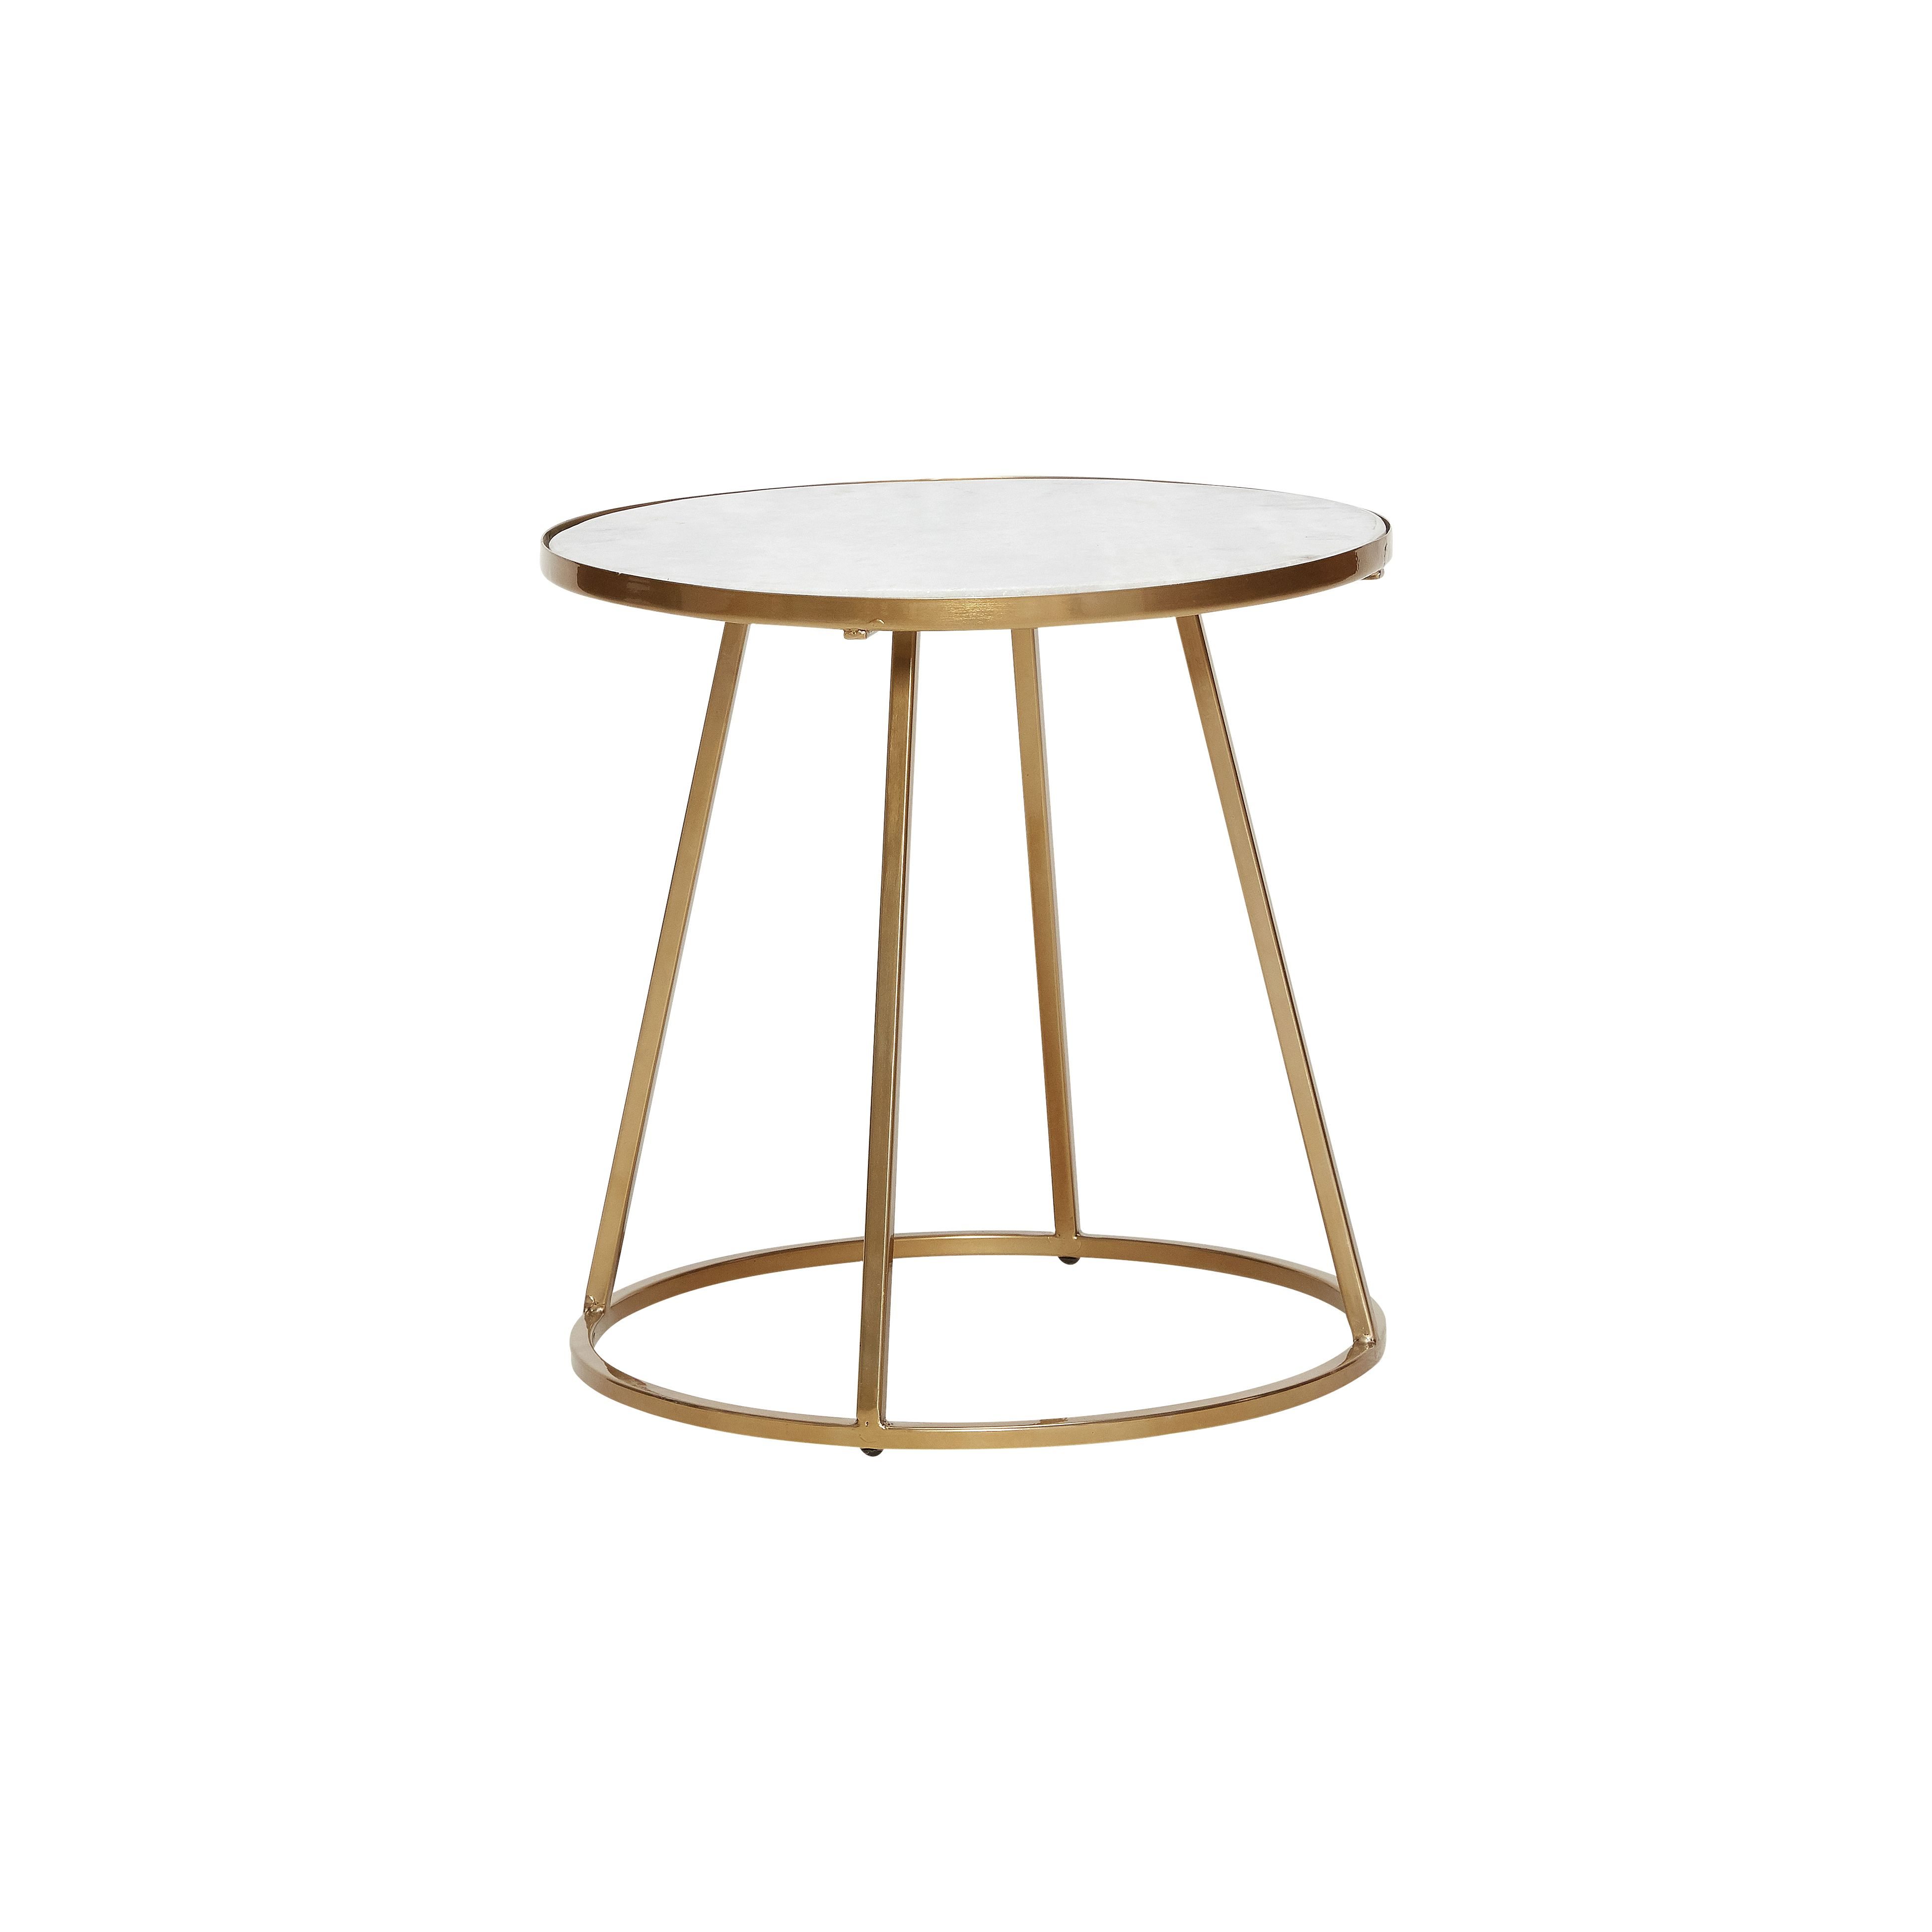 table w/gold frame, metal/marble, white/gold. product number